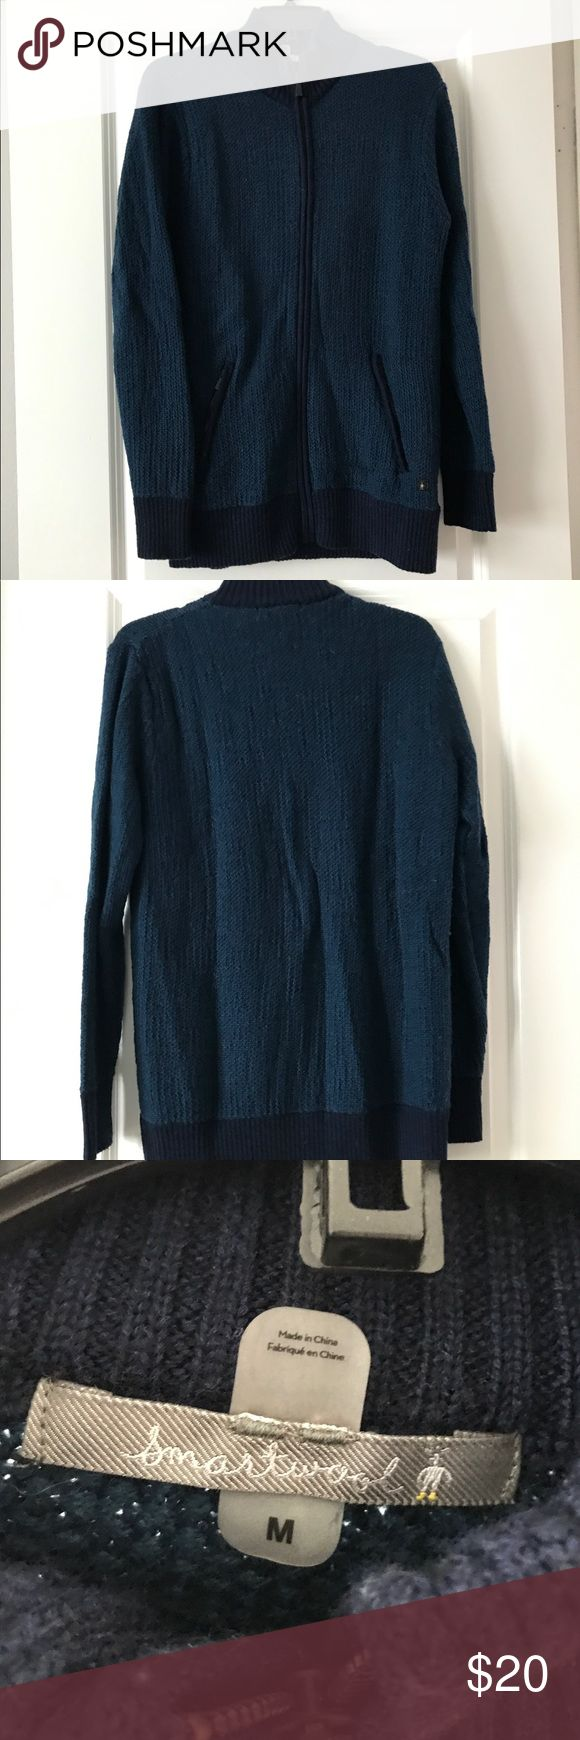 Preowned Men's Smartwool FullZip Blue Cardigan Men's size medium, in great condition as pictured. Smartwool Sweaters Zip Up